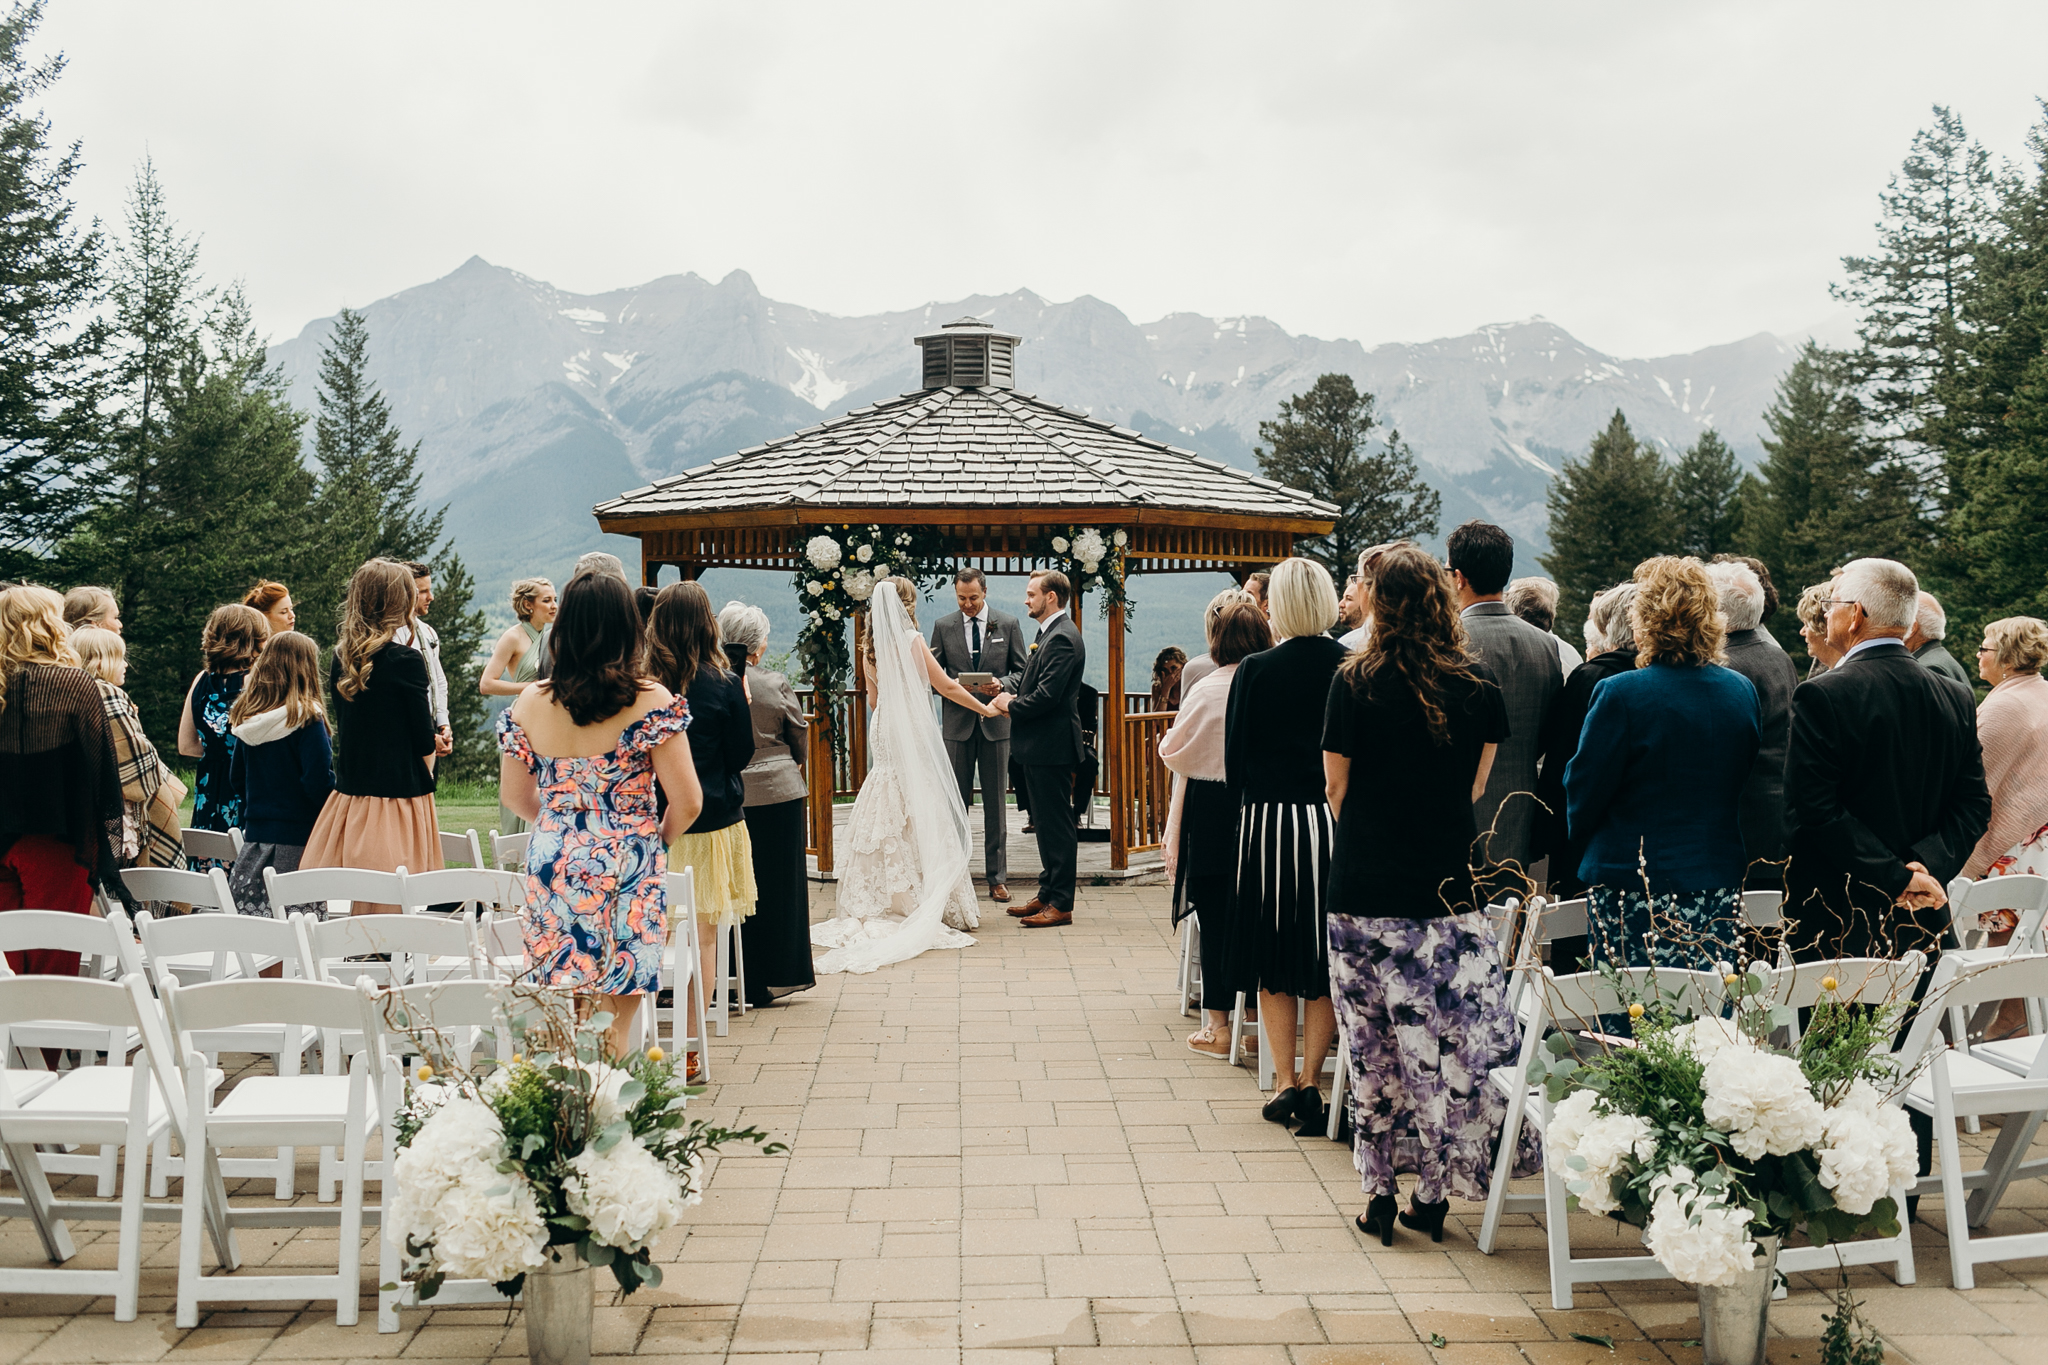 Wedding ceremony at Silvertip Resort Canmore Alberta